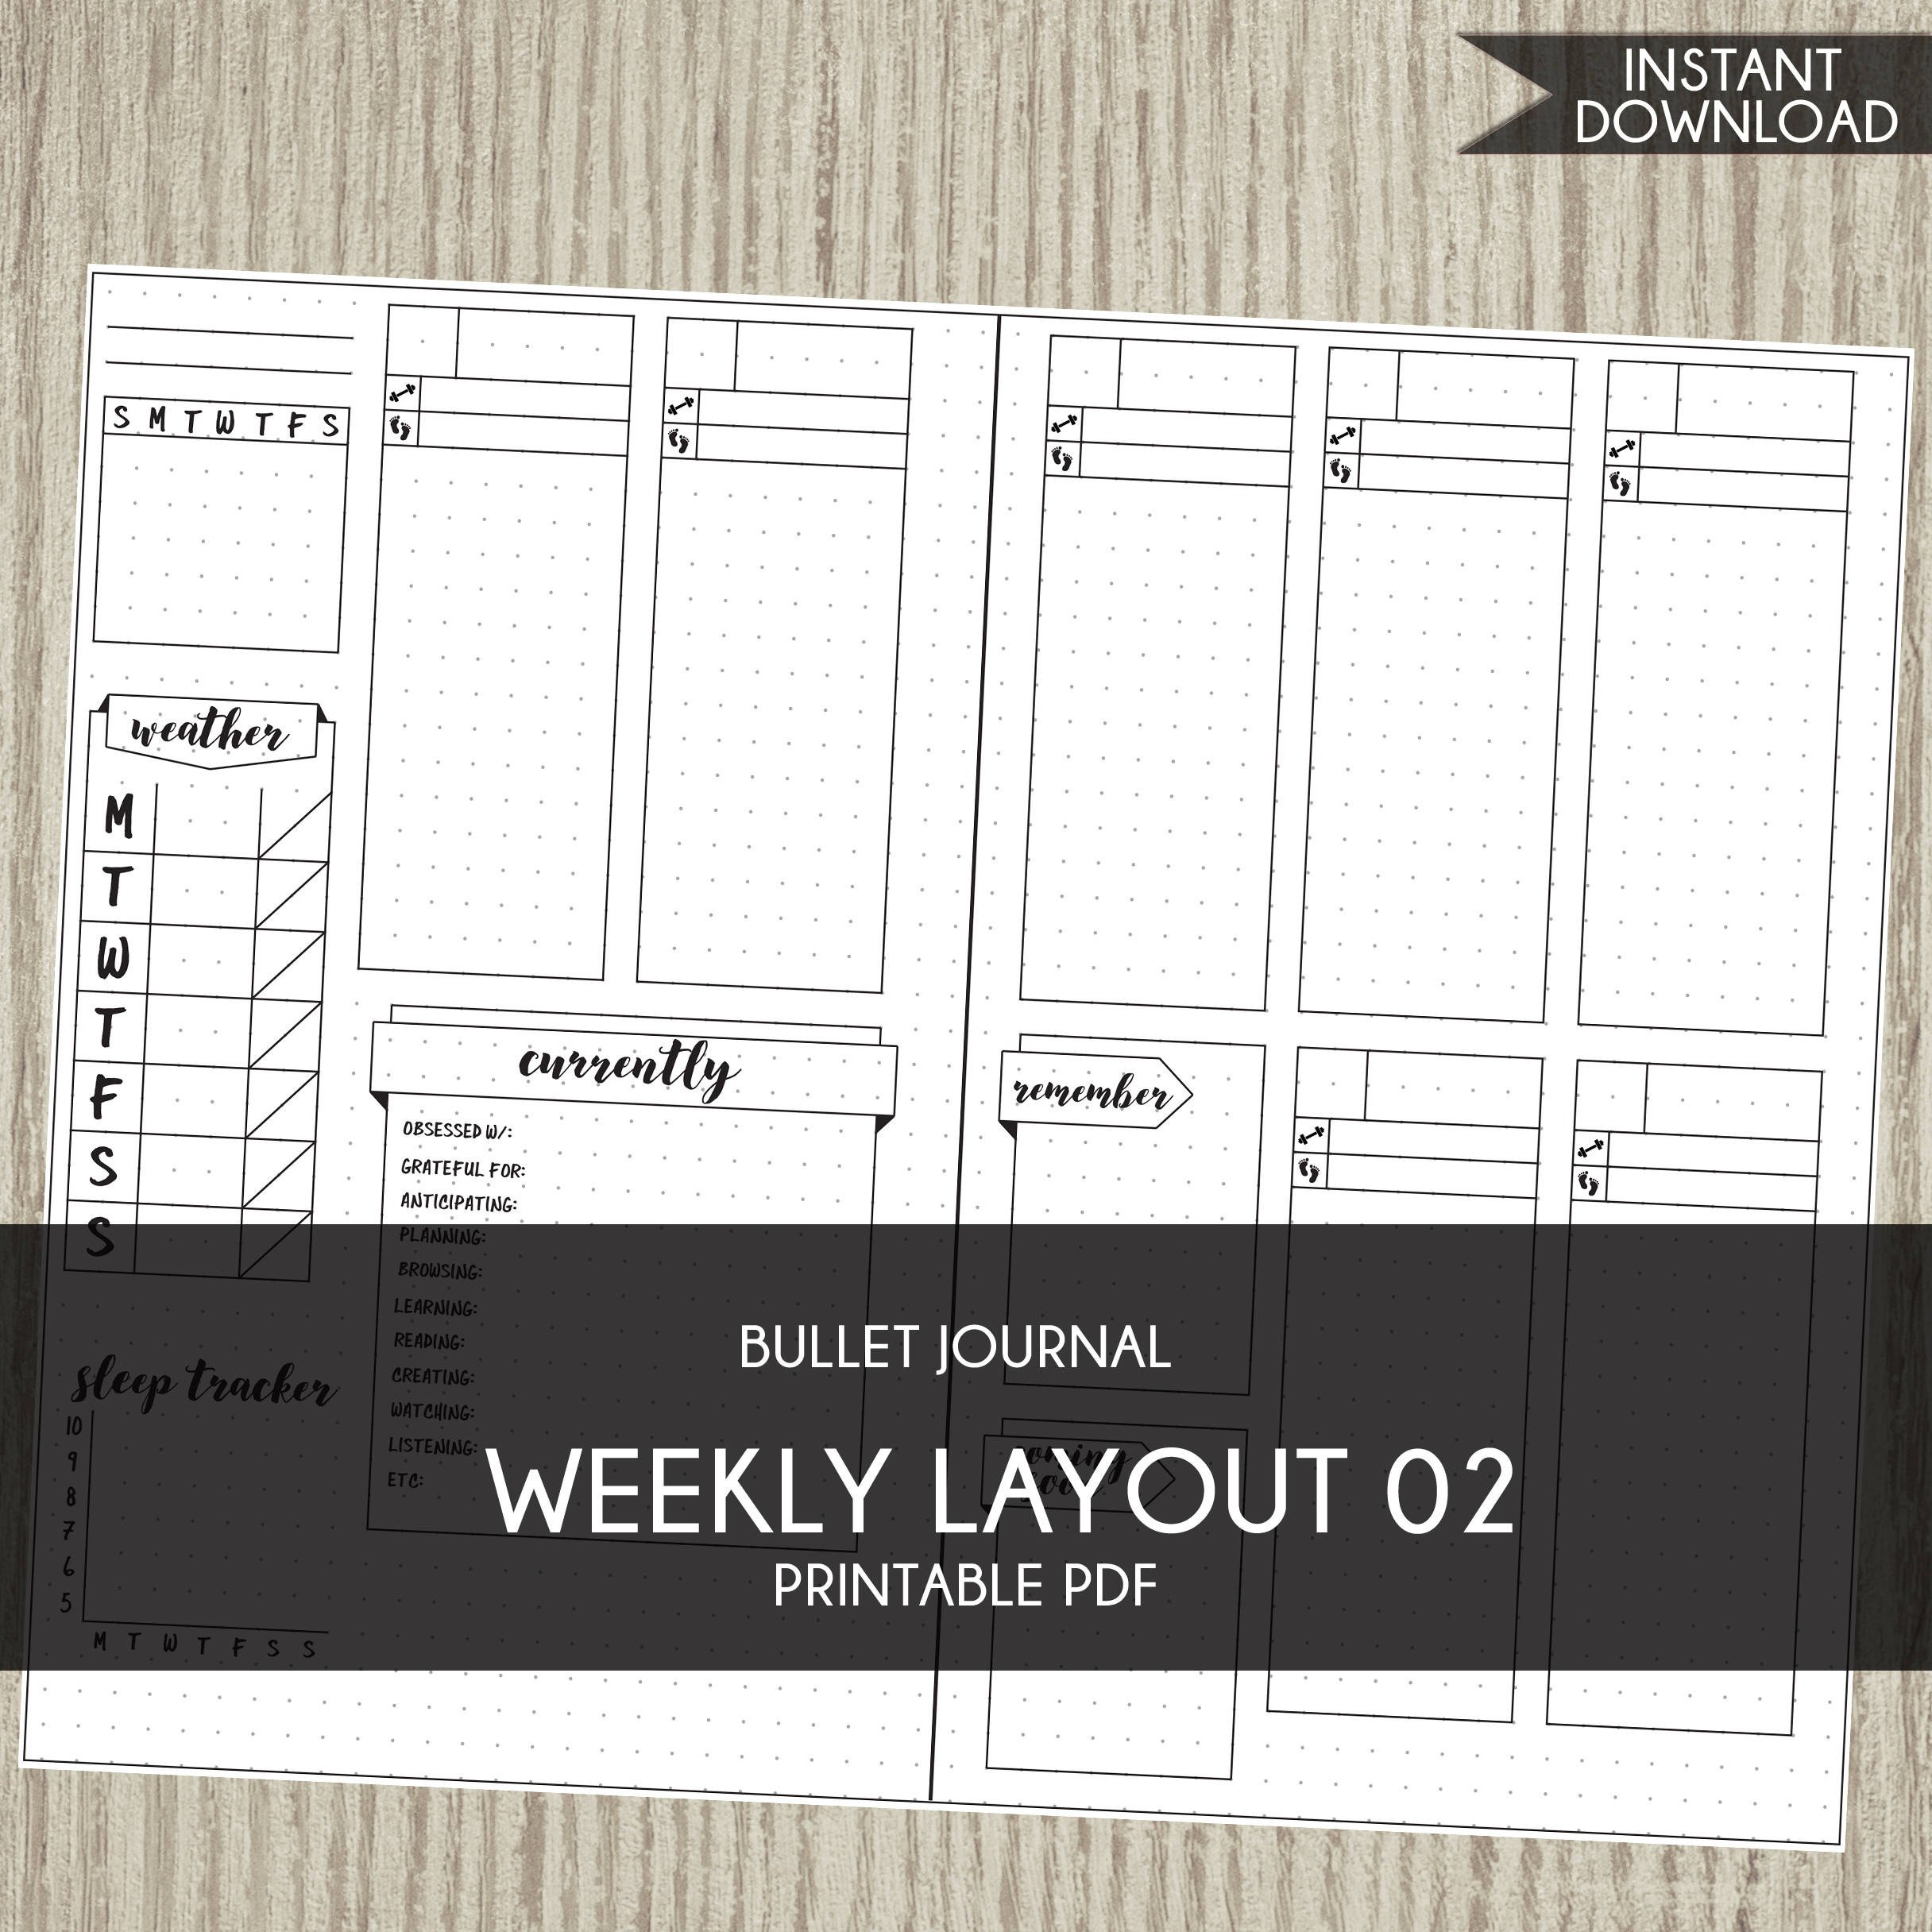 Bullet Journal Layout Templates Bullet Journal Template Printable Planner Weekly Layout Bujo